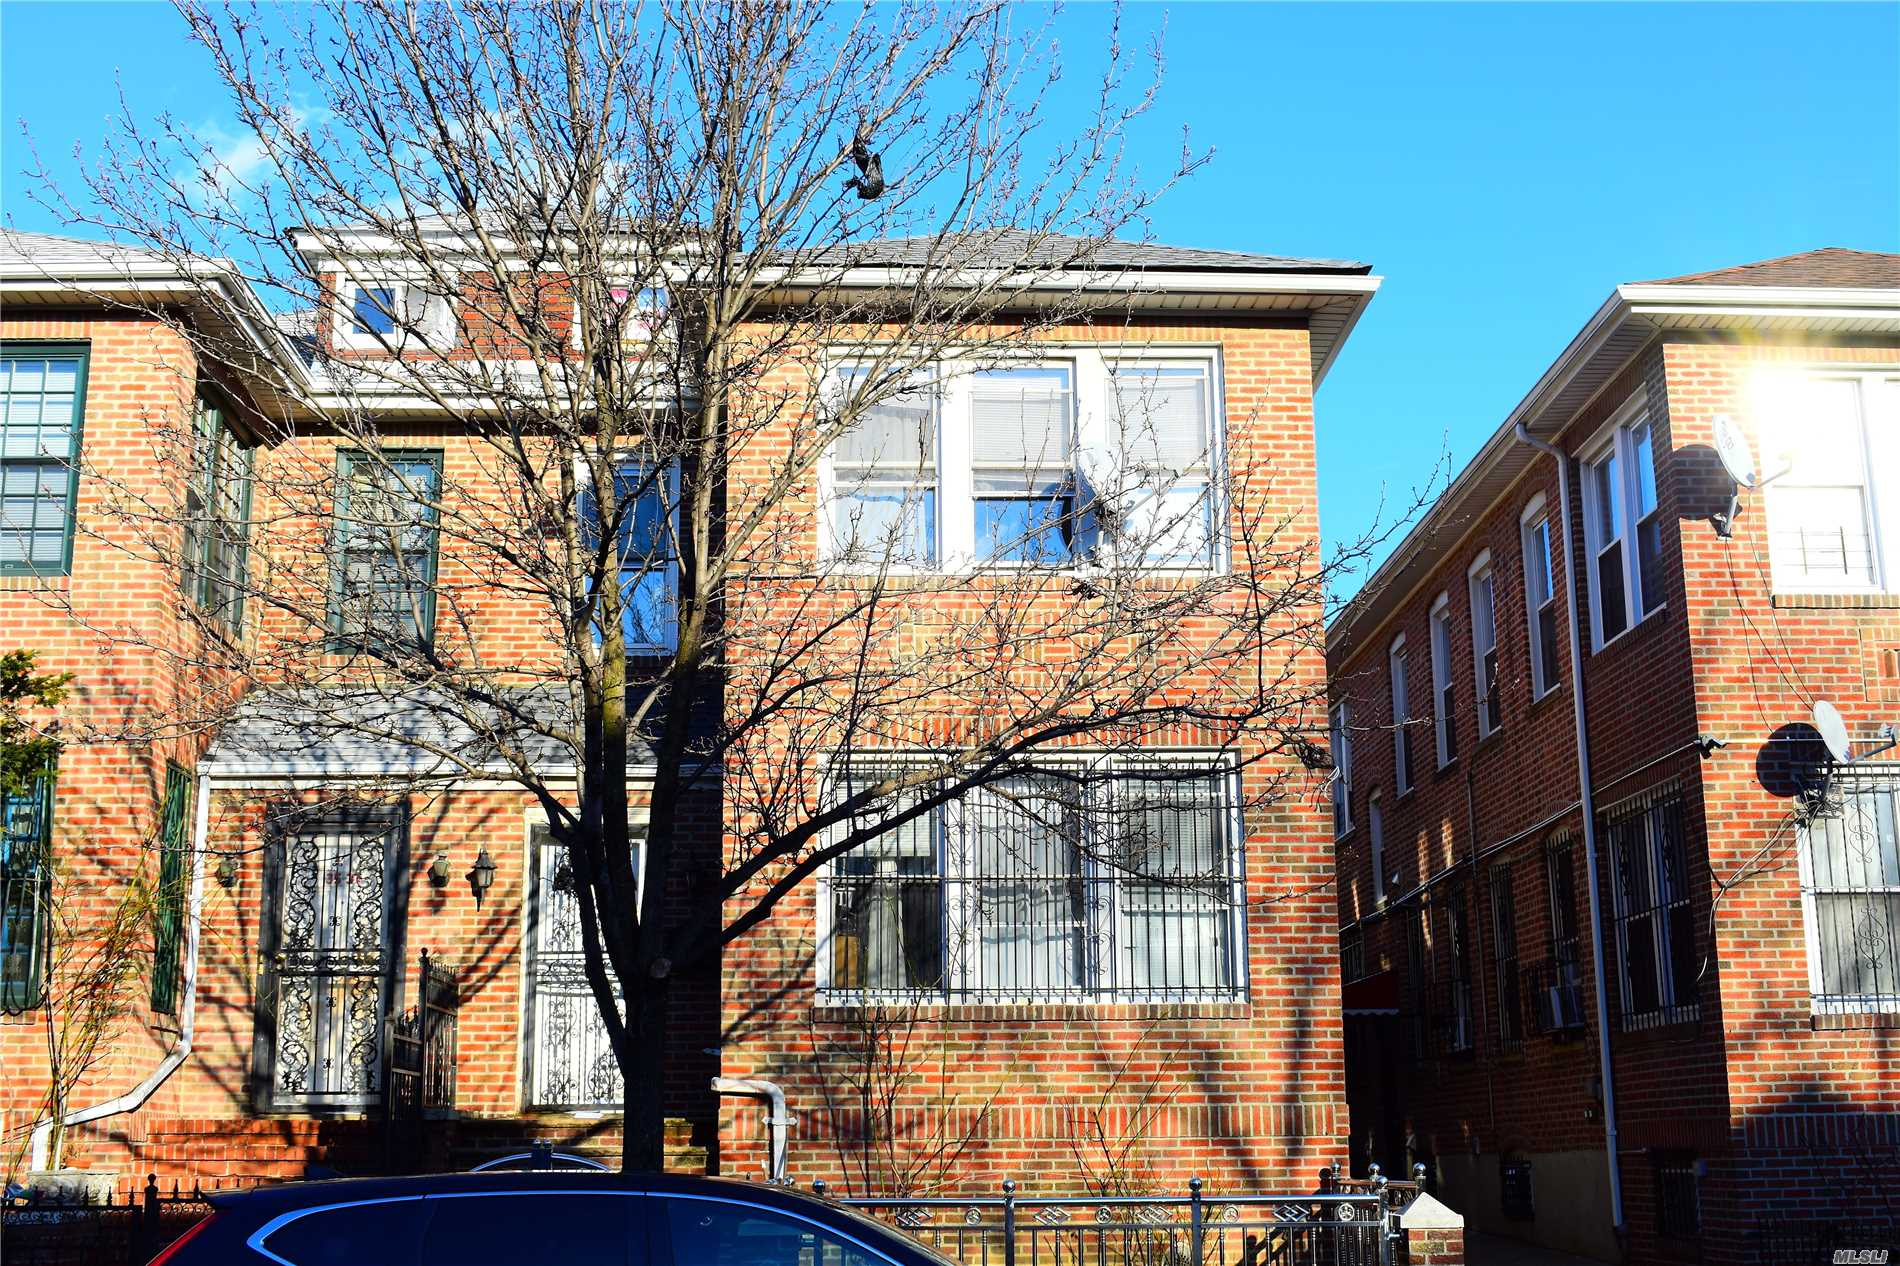 A Beautiful And Spacious Two-Family Home In Jackson Heights! Home Is Currently Configured With Three Bedrooms, Full Bath, Eat-In Kitchen, Living Room And Sunroom On The 1st Floor. 2nd Floor Has Four Bedrooms, Full Bath, Kitchen, And Dining Area. Rooms Are Filled With Natural Light And The High Ceilings Give This Home An Open And Airy Esthetic. Finished Full Basement And Attic Too! 20X57 Lot Size, With Approximately 2300 Interior Square Footage. Brand New Roof Installed Just Over A Year Ago! Deta